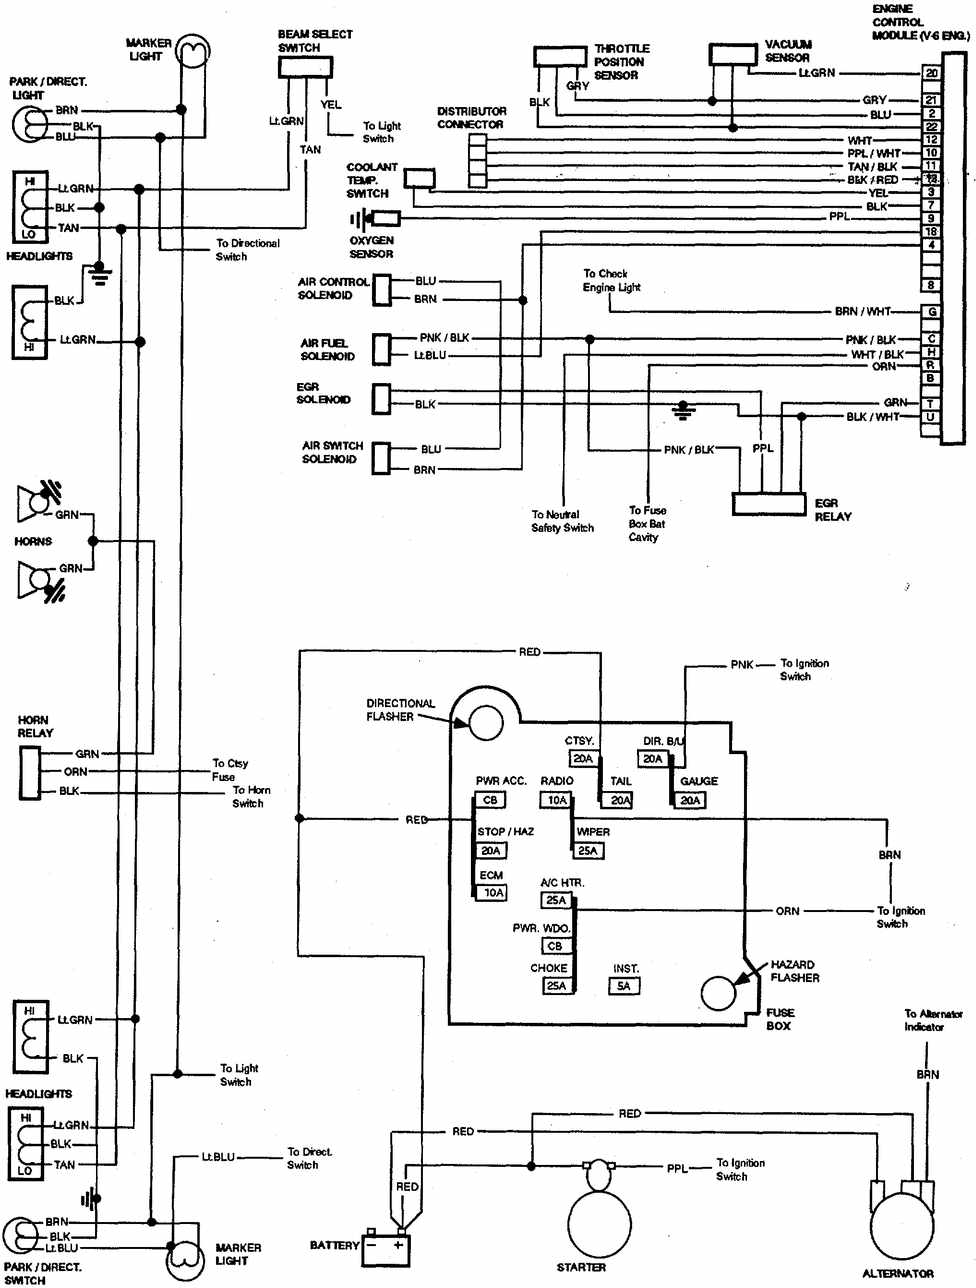 small resolution of chevrolet v8 trucks 1981 1987 electrical wiring diagram rover 75 engine fuse box rover 75 engine